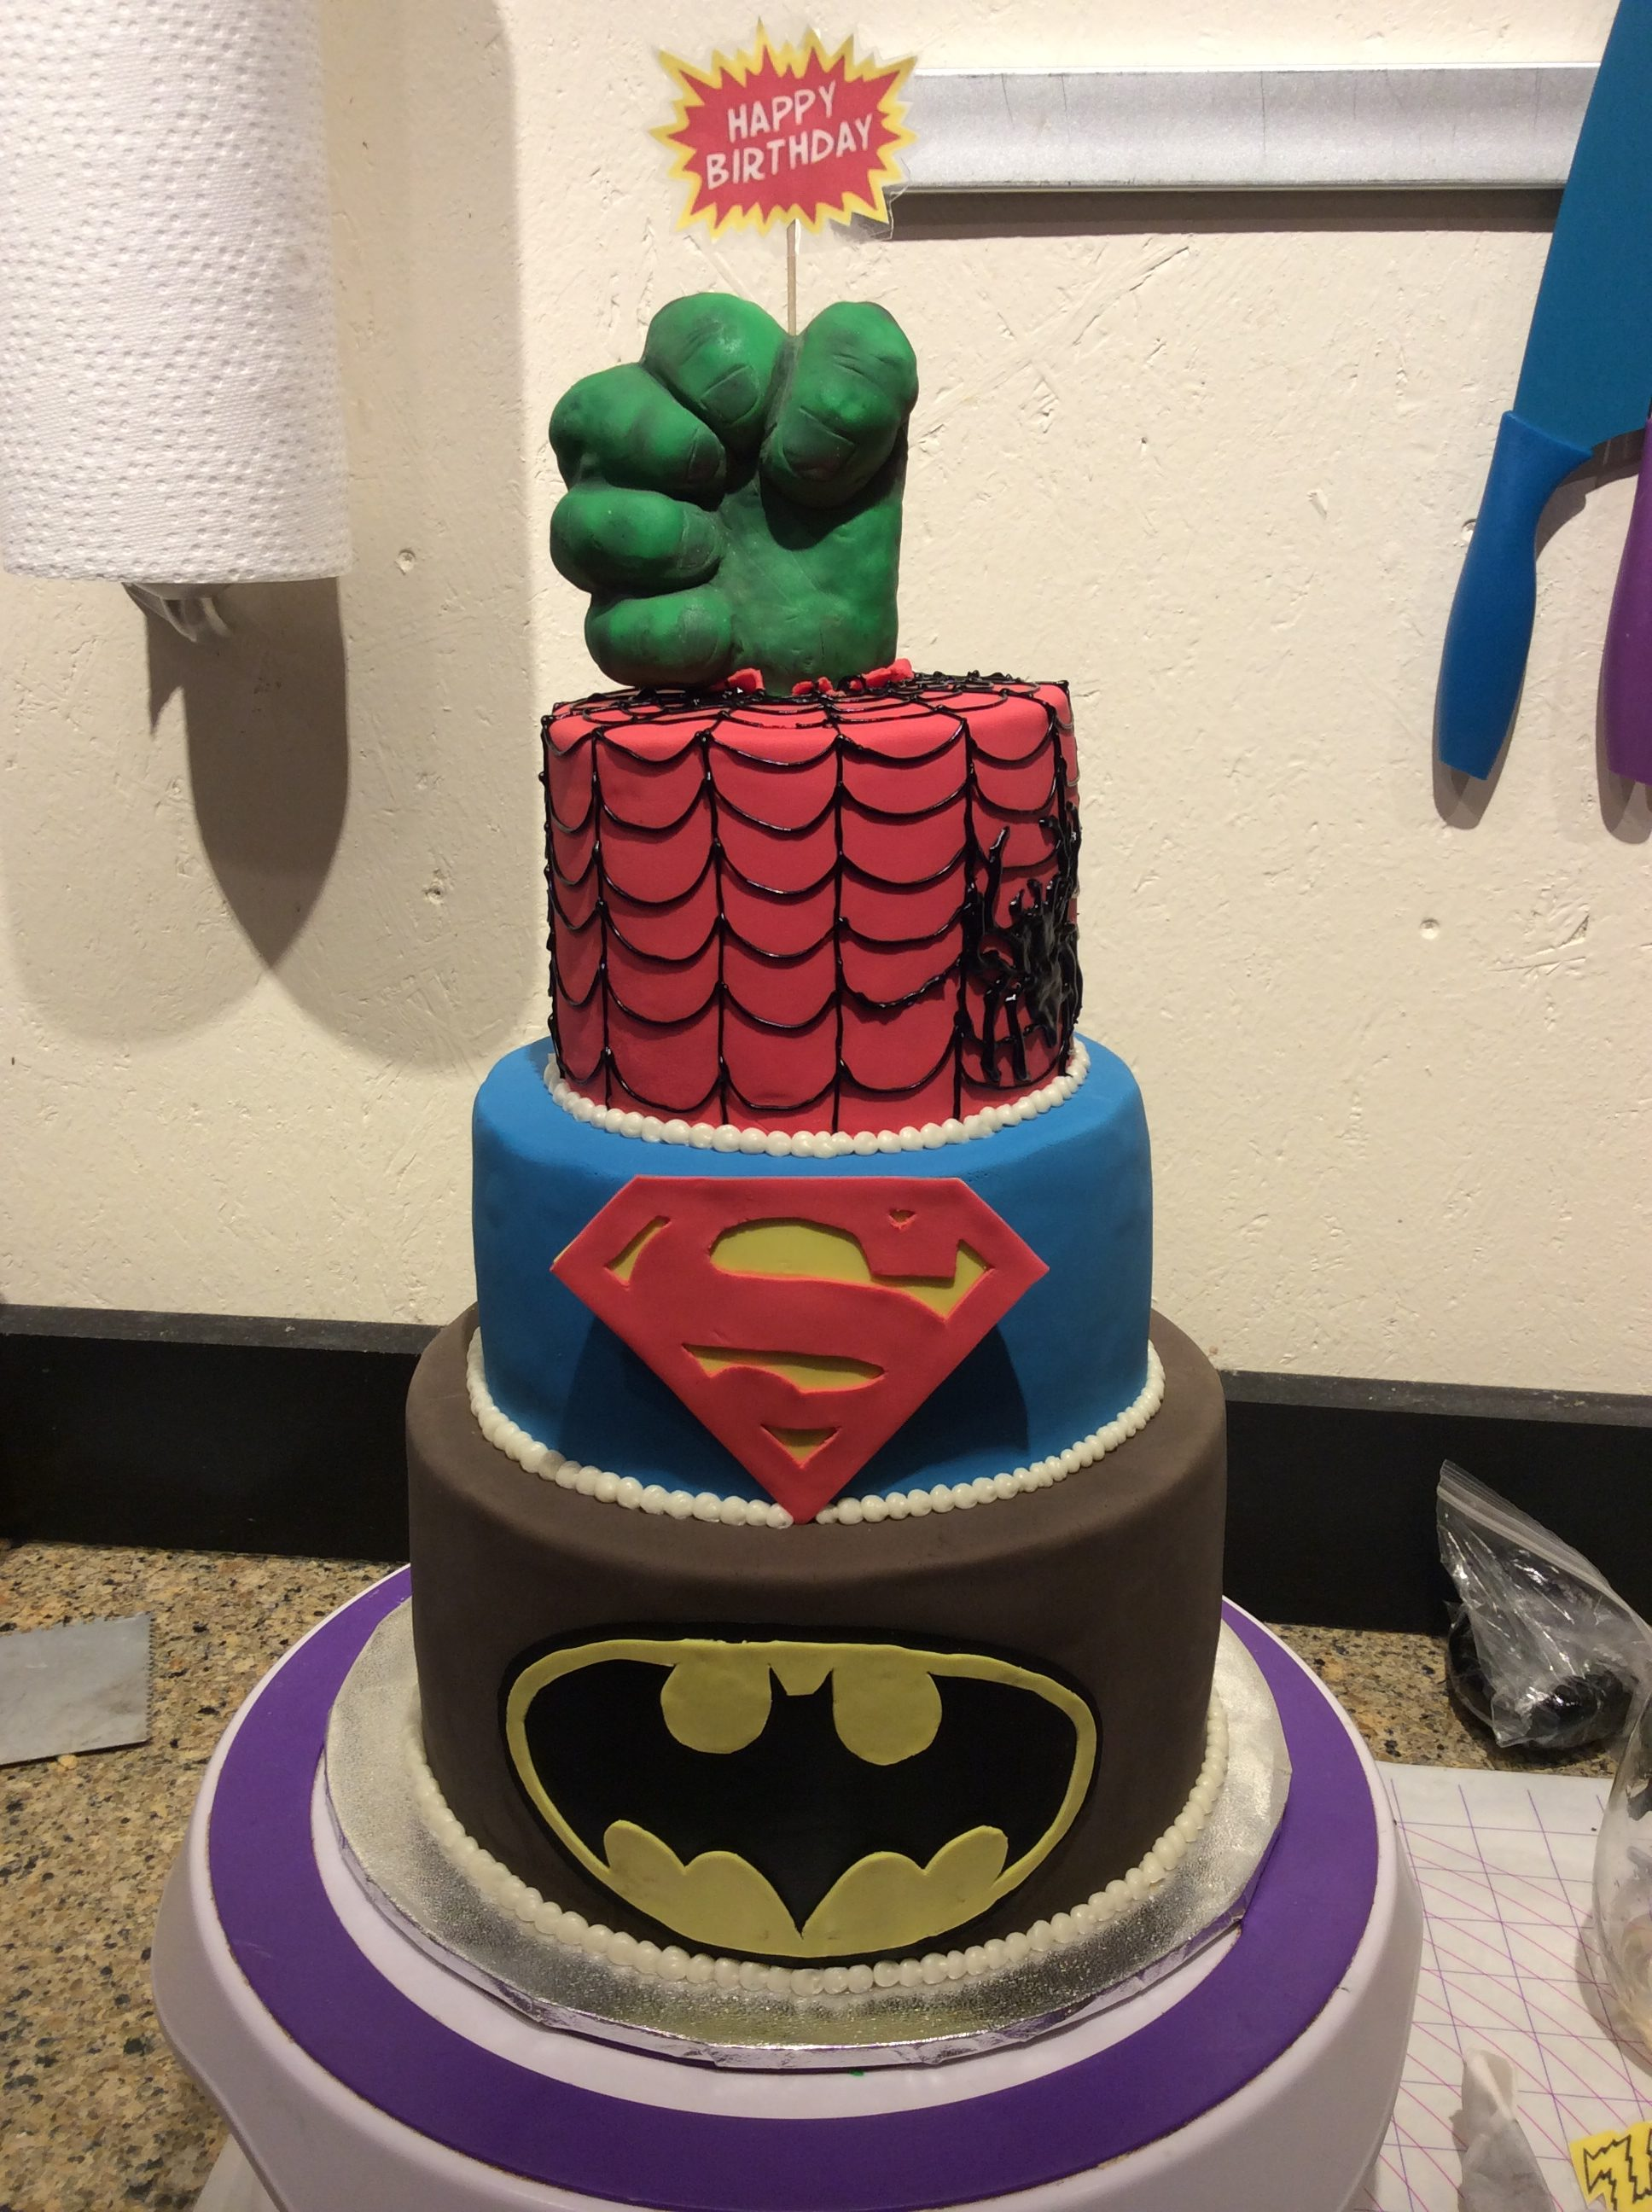 Super Hero Birthday Cake Angela Welch